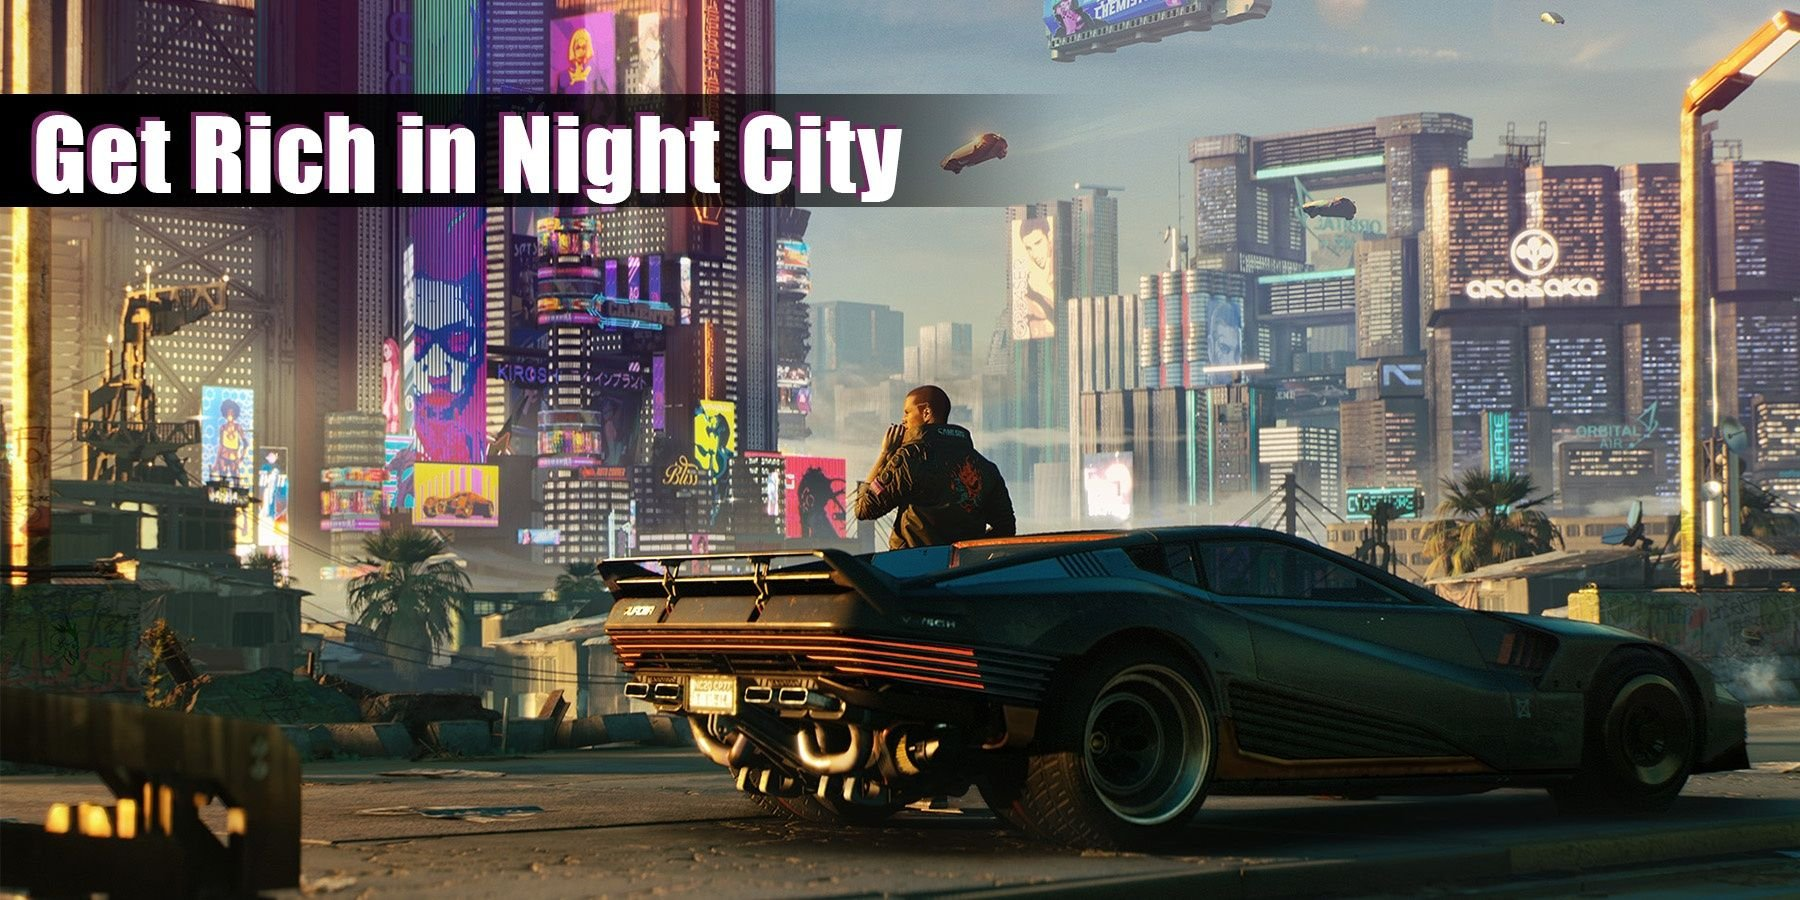 Cyberpunk 2077: 10 Side Quests The Will Make You Rich